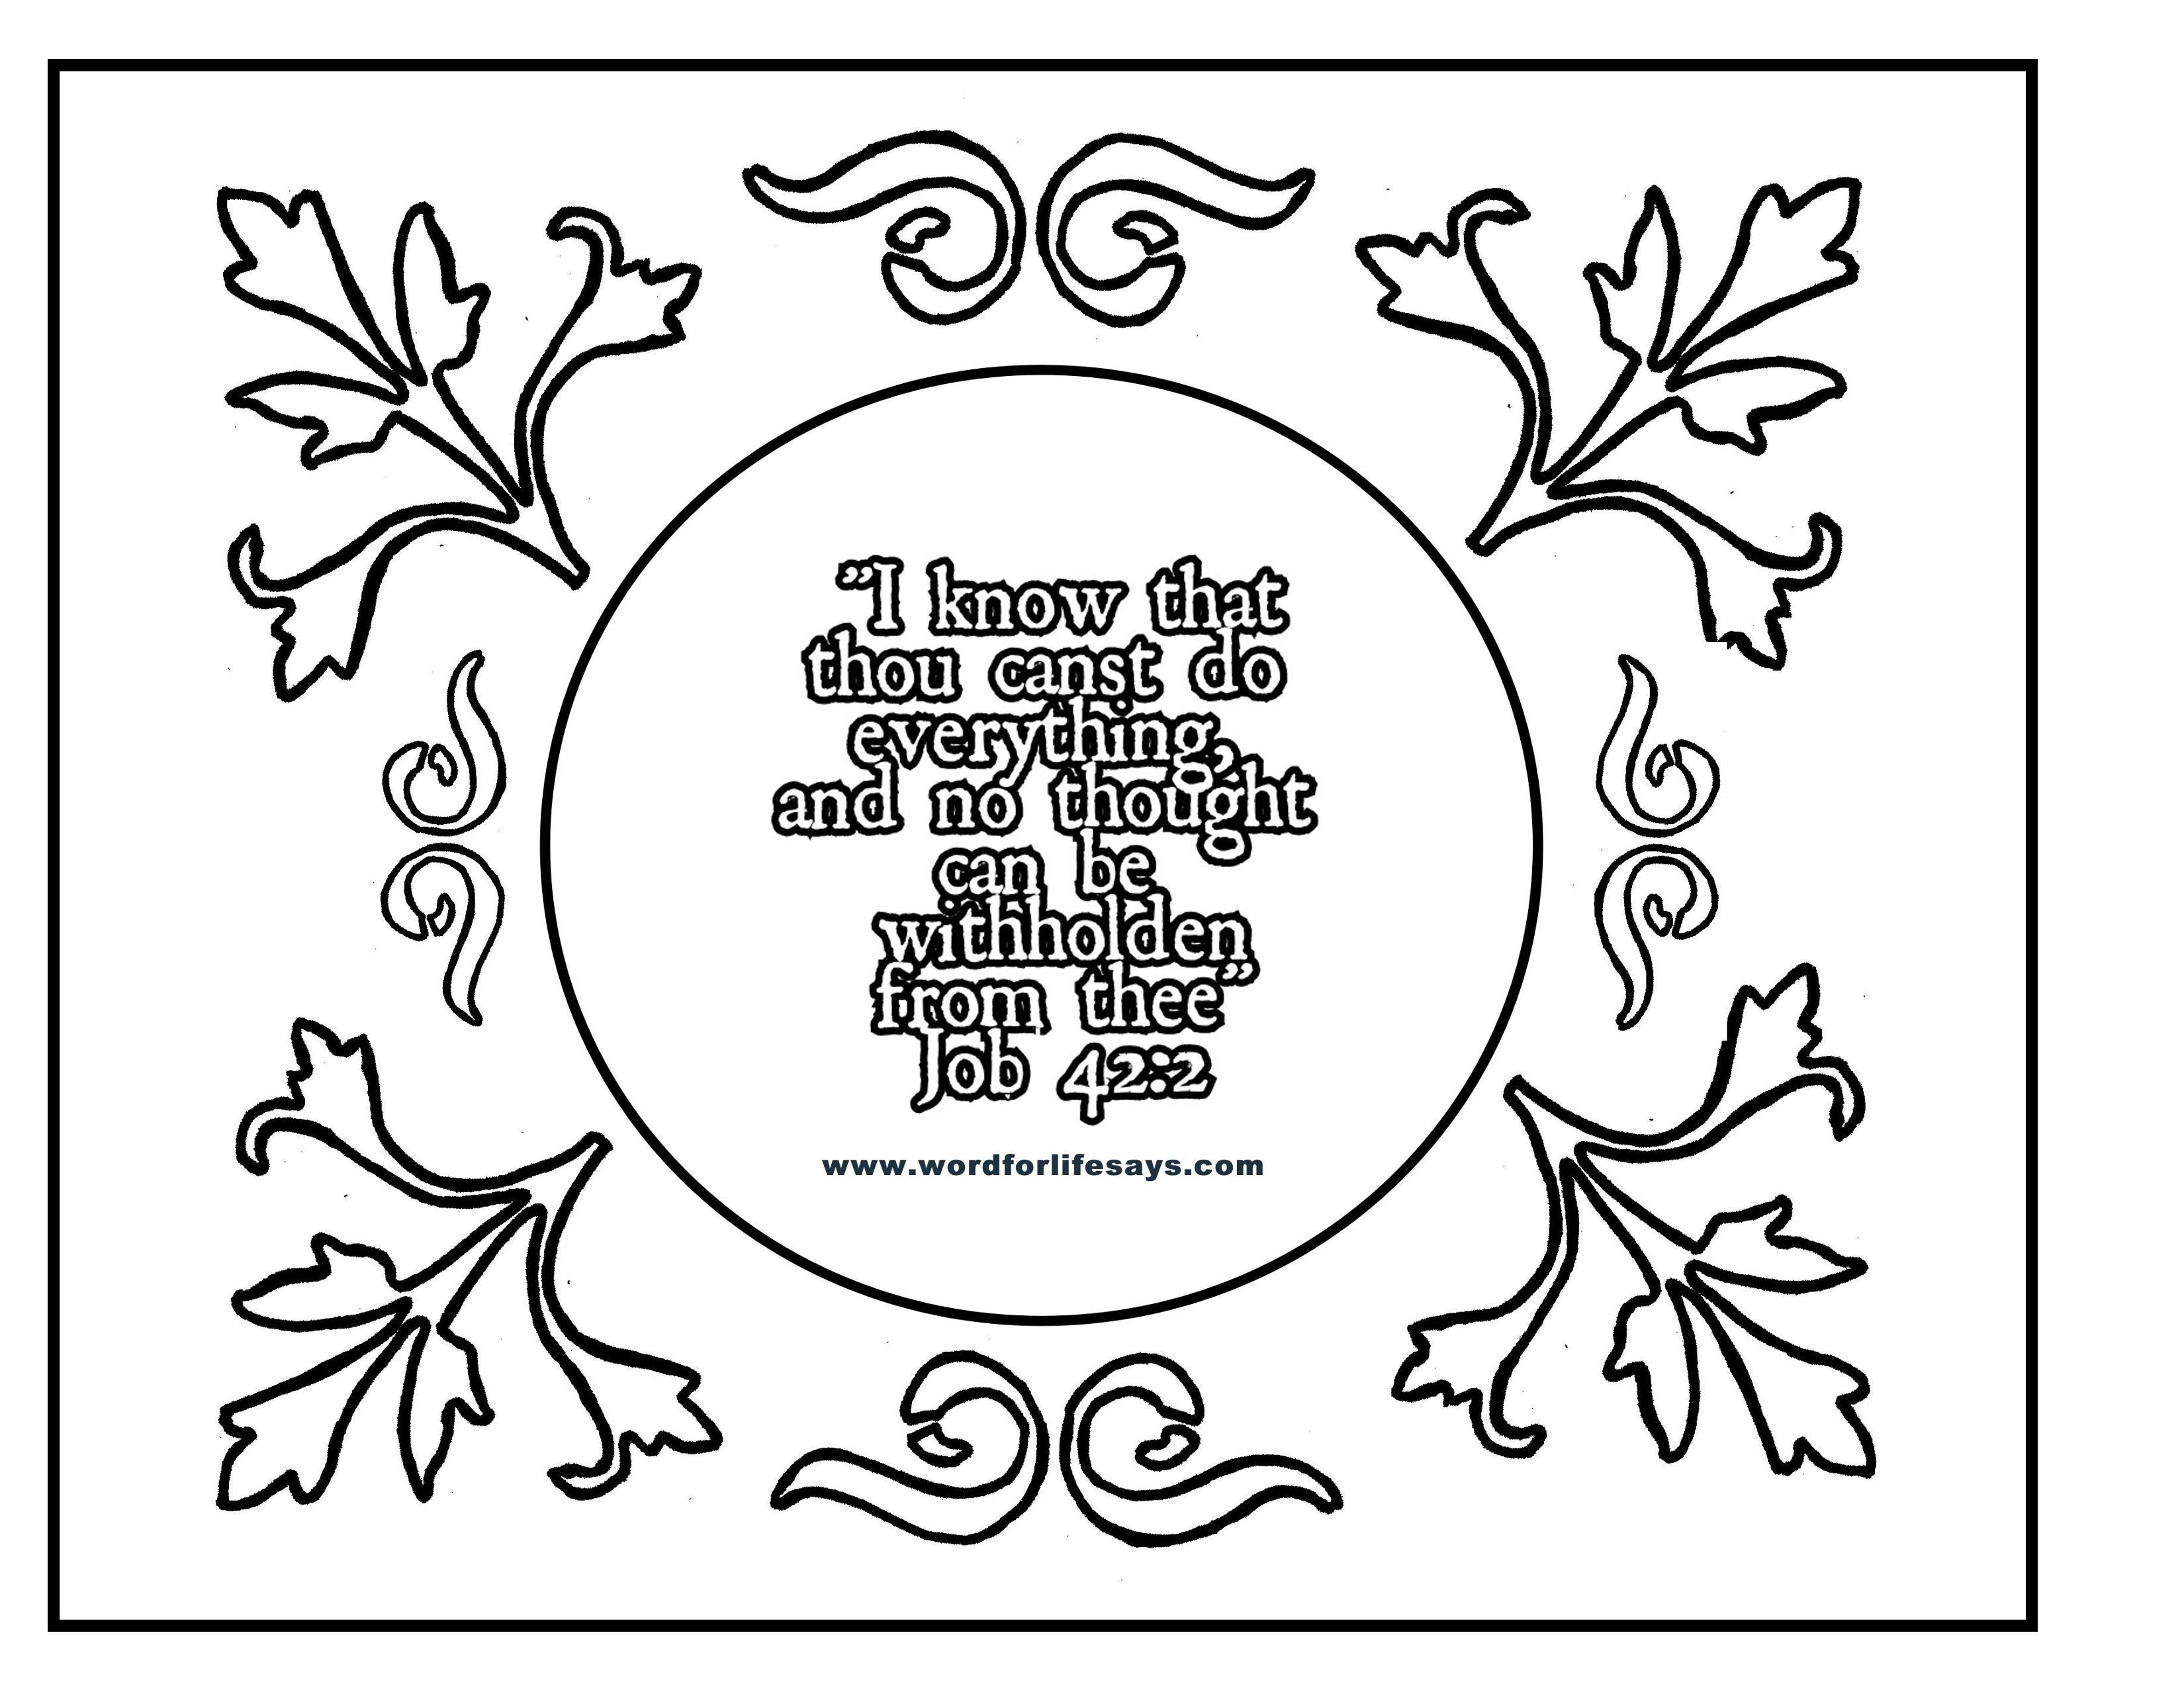 Job 42 2 Coloring Sheet 2 001